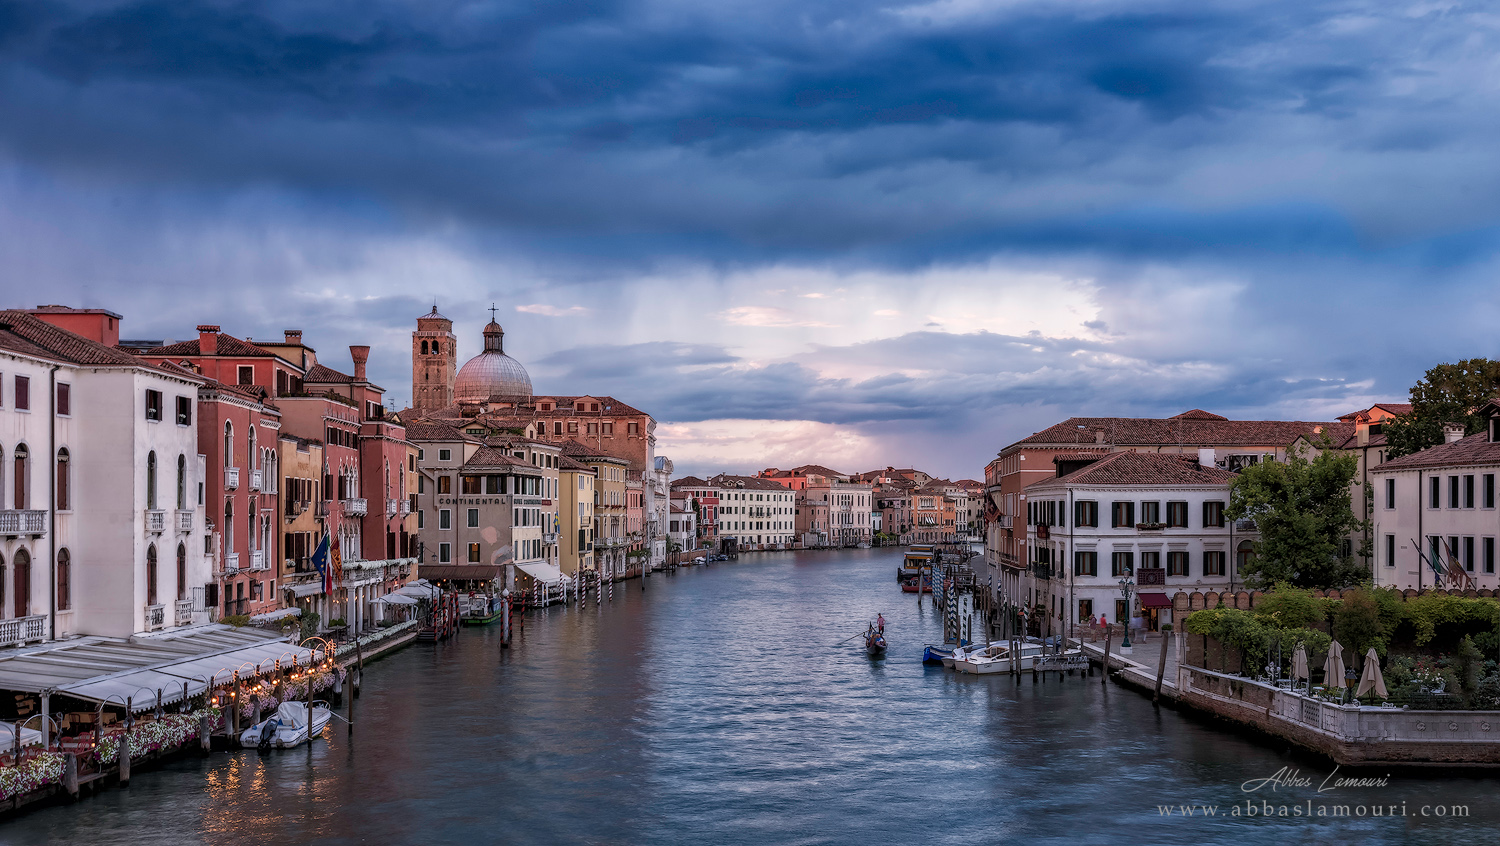 A View of Grand Canal from Ponte degli Scalzi - Venice, Italy